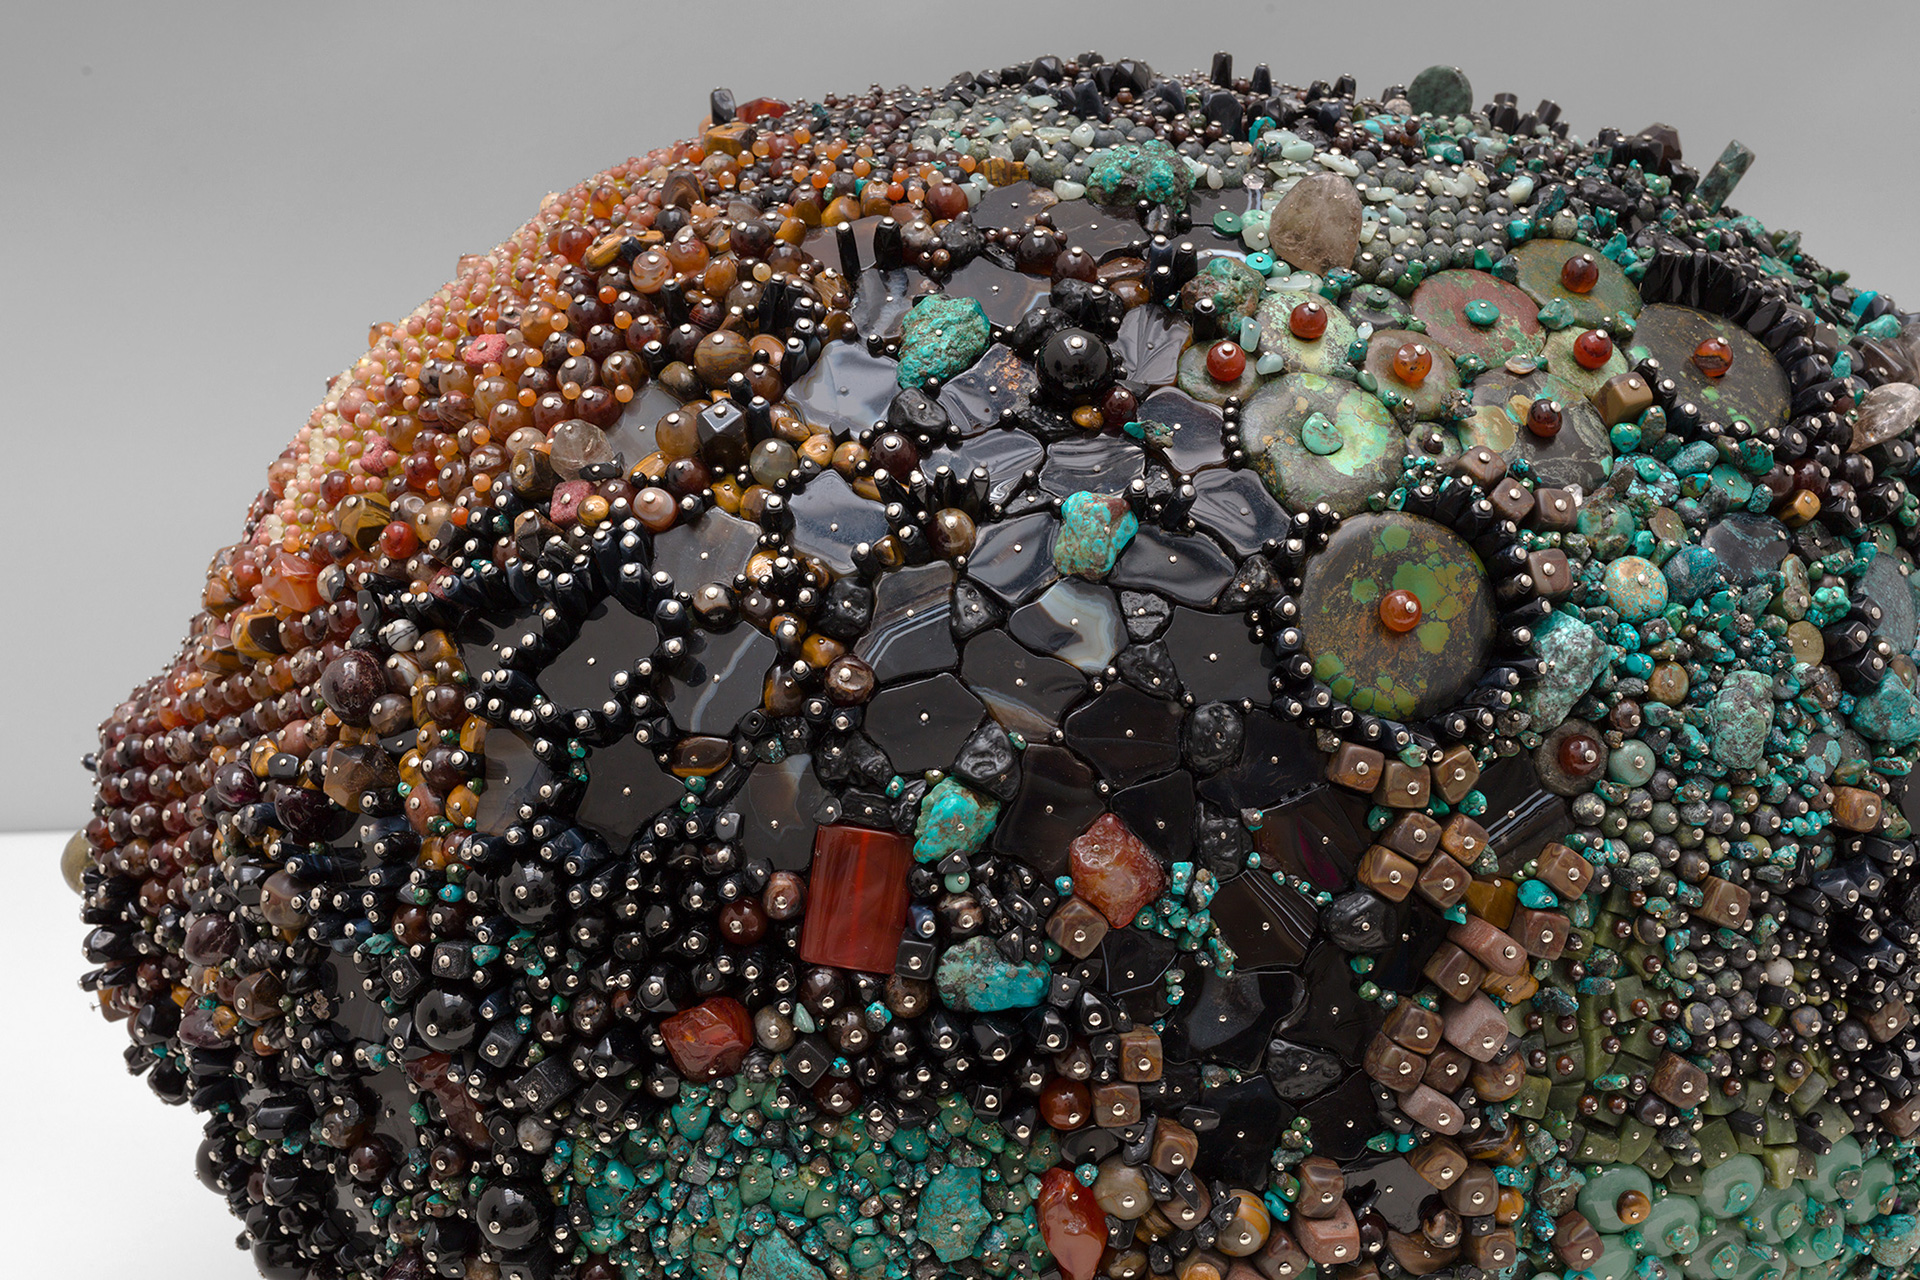 Kathleen Ryan, Black Lemon, Obsidian, black onyx, agate, turquoise, pyrite, tiger eye, jasper, smokey quartz, tektite, lapis lazuli, aventurine, and other precious stones coated with polystyrene, 19 x 18 x 27 inches, 2019 | Kathleen Ryan | STIRworld